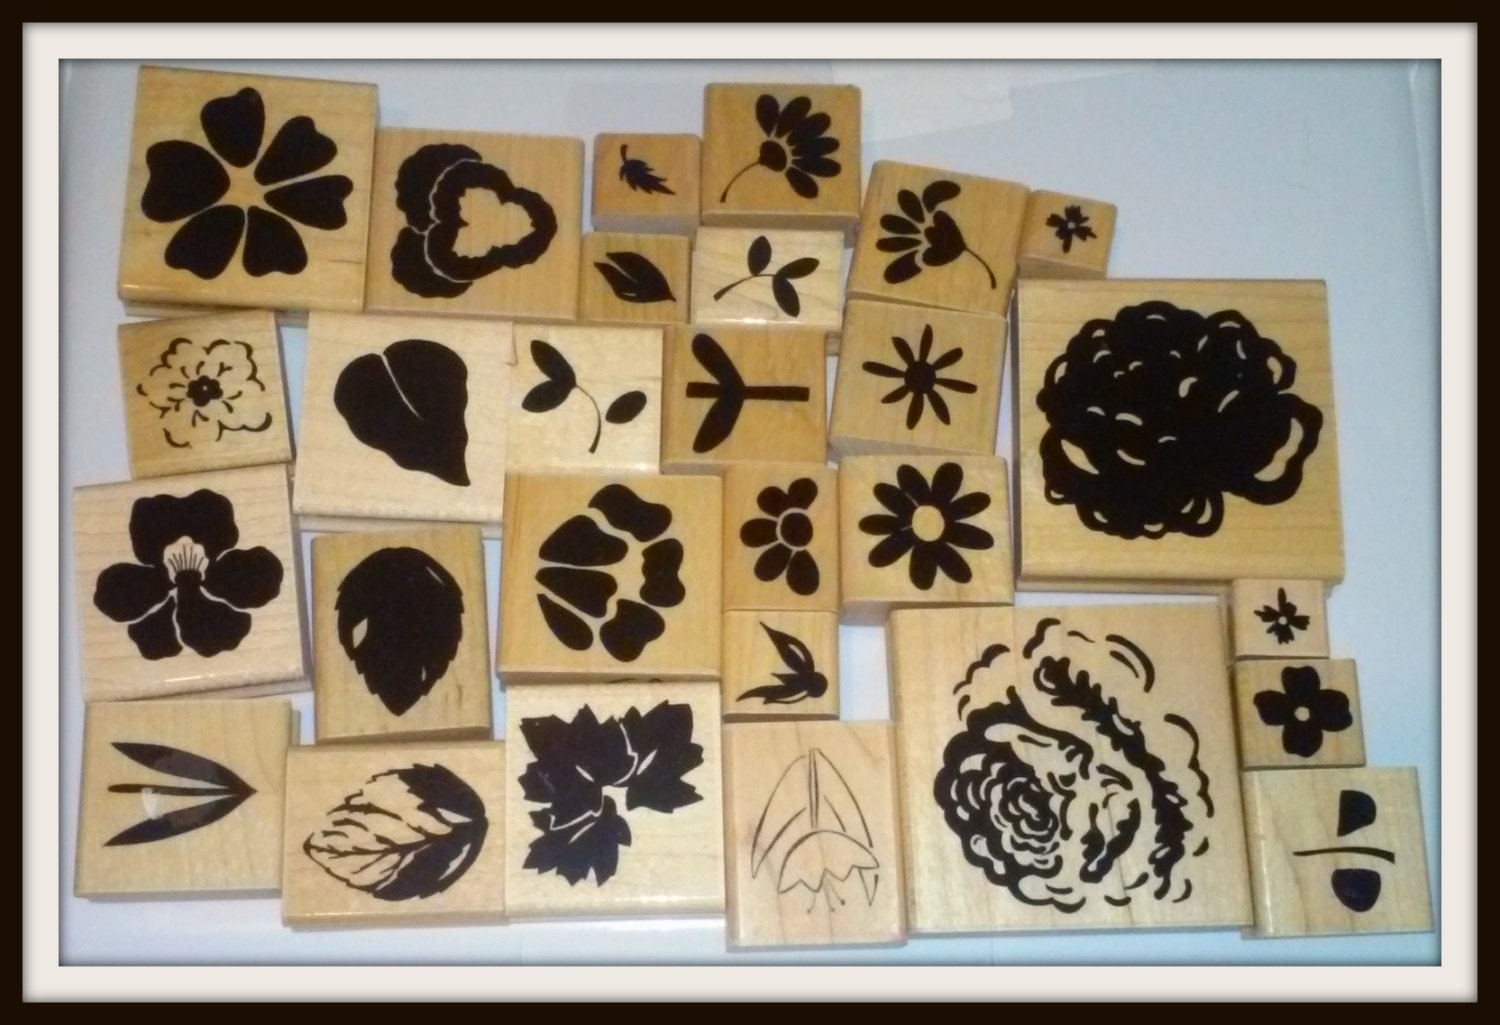 Rubber stamps for crafting - Lot Of 28 Wooden Rubber Stamps For Scrapbooking Or Paper Crafting All Floral Designs Mostly Close To My Heart Brand